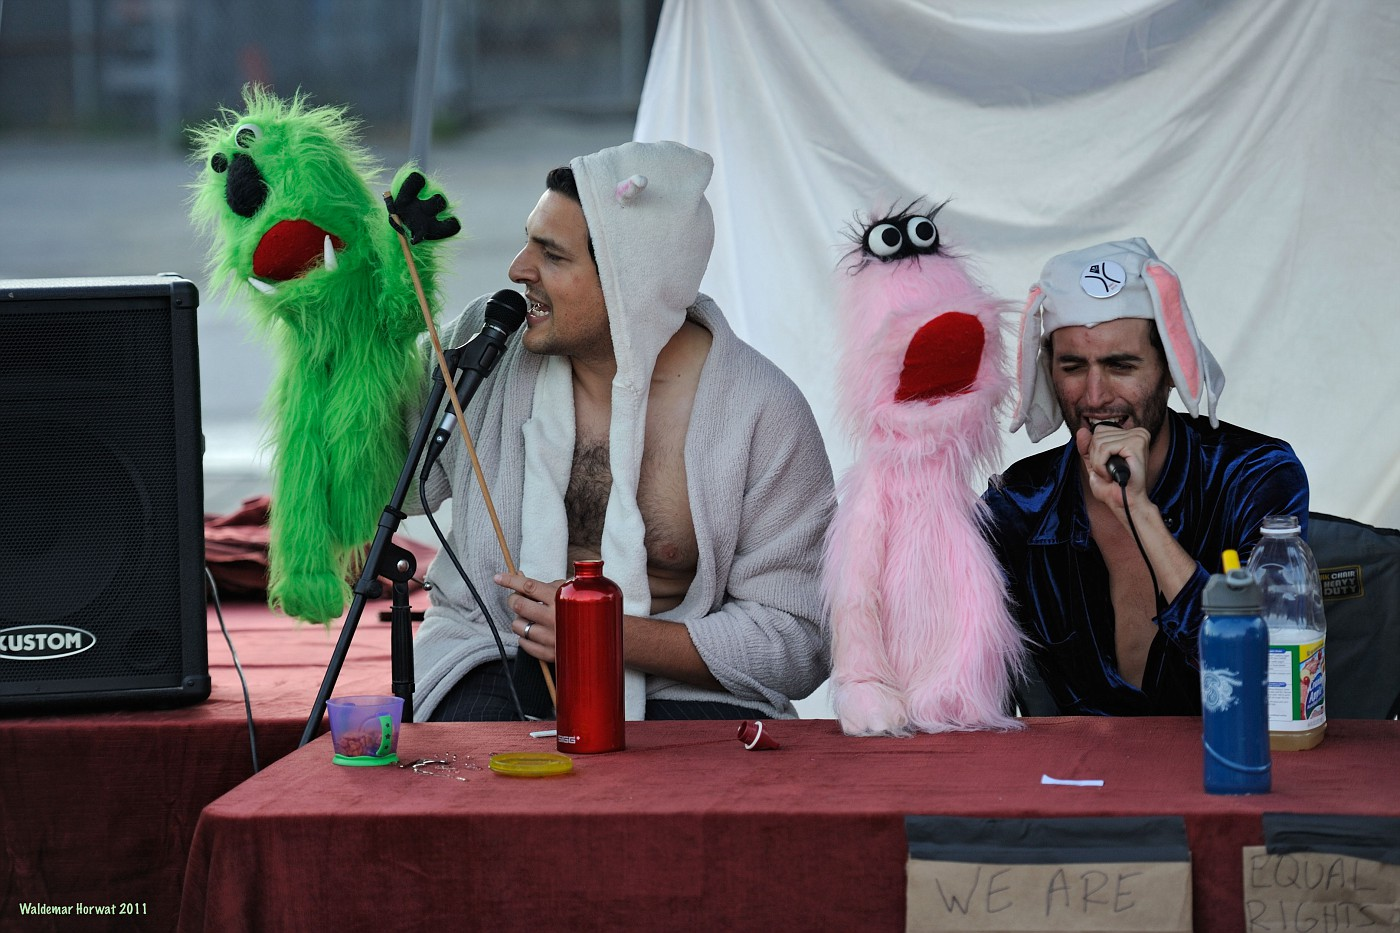 Occupying Sesame Street